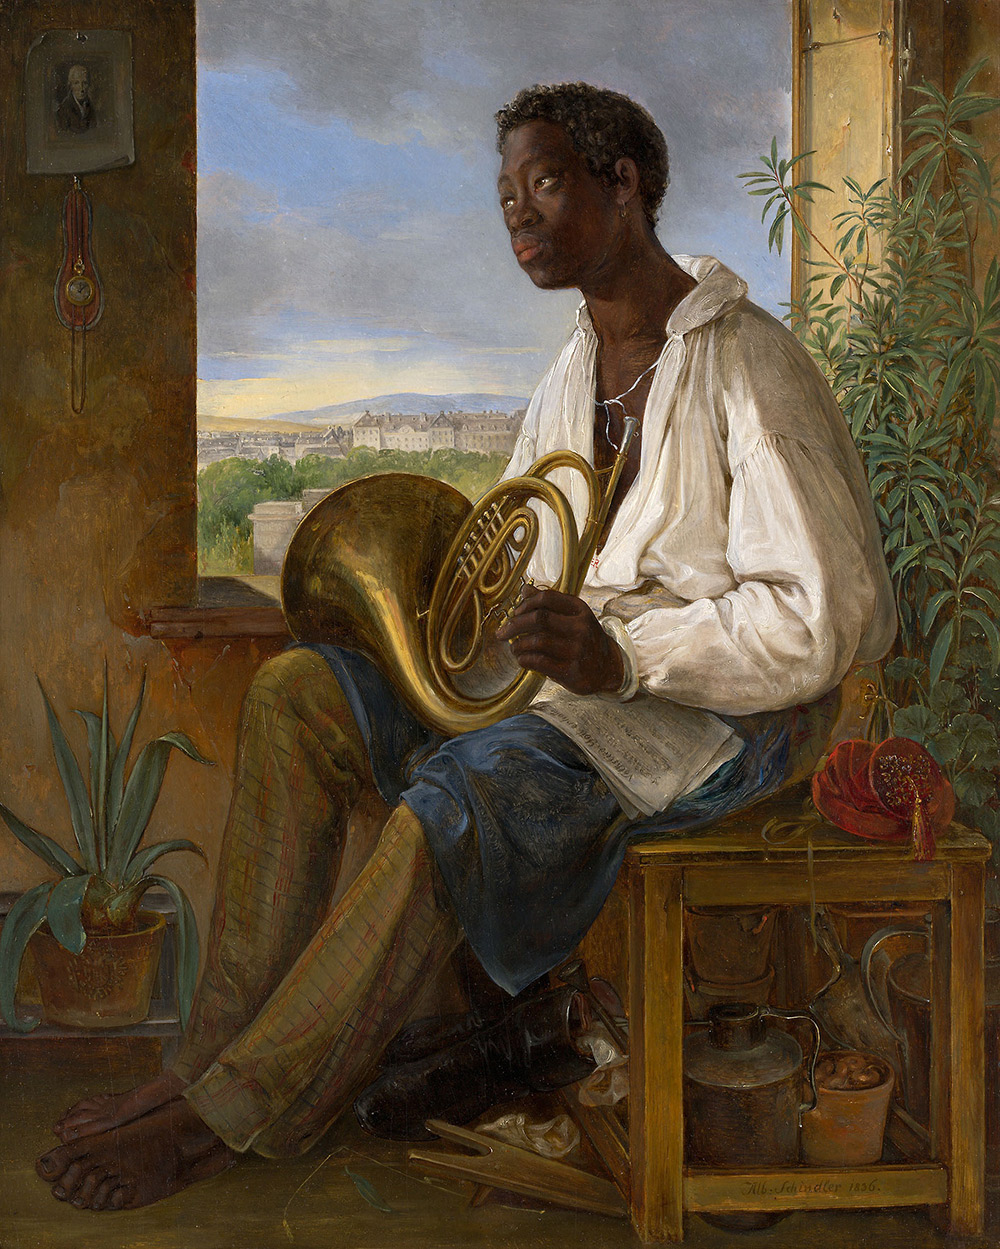 A dark-skinned man (or boy) sits by a window. He's wearing a white shirt and holding a French horn.